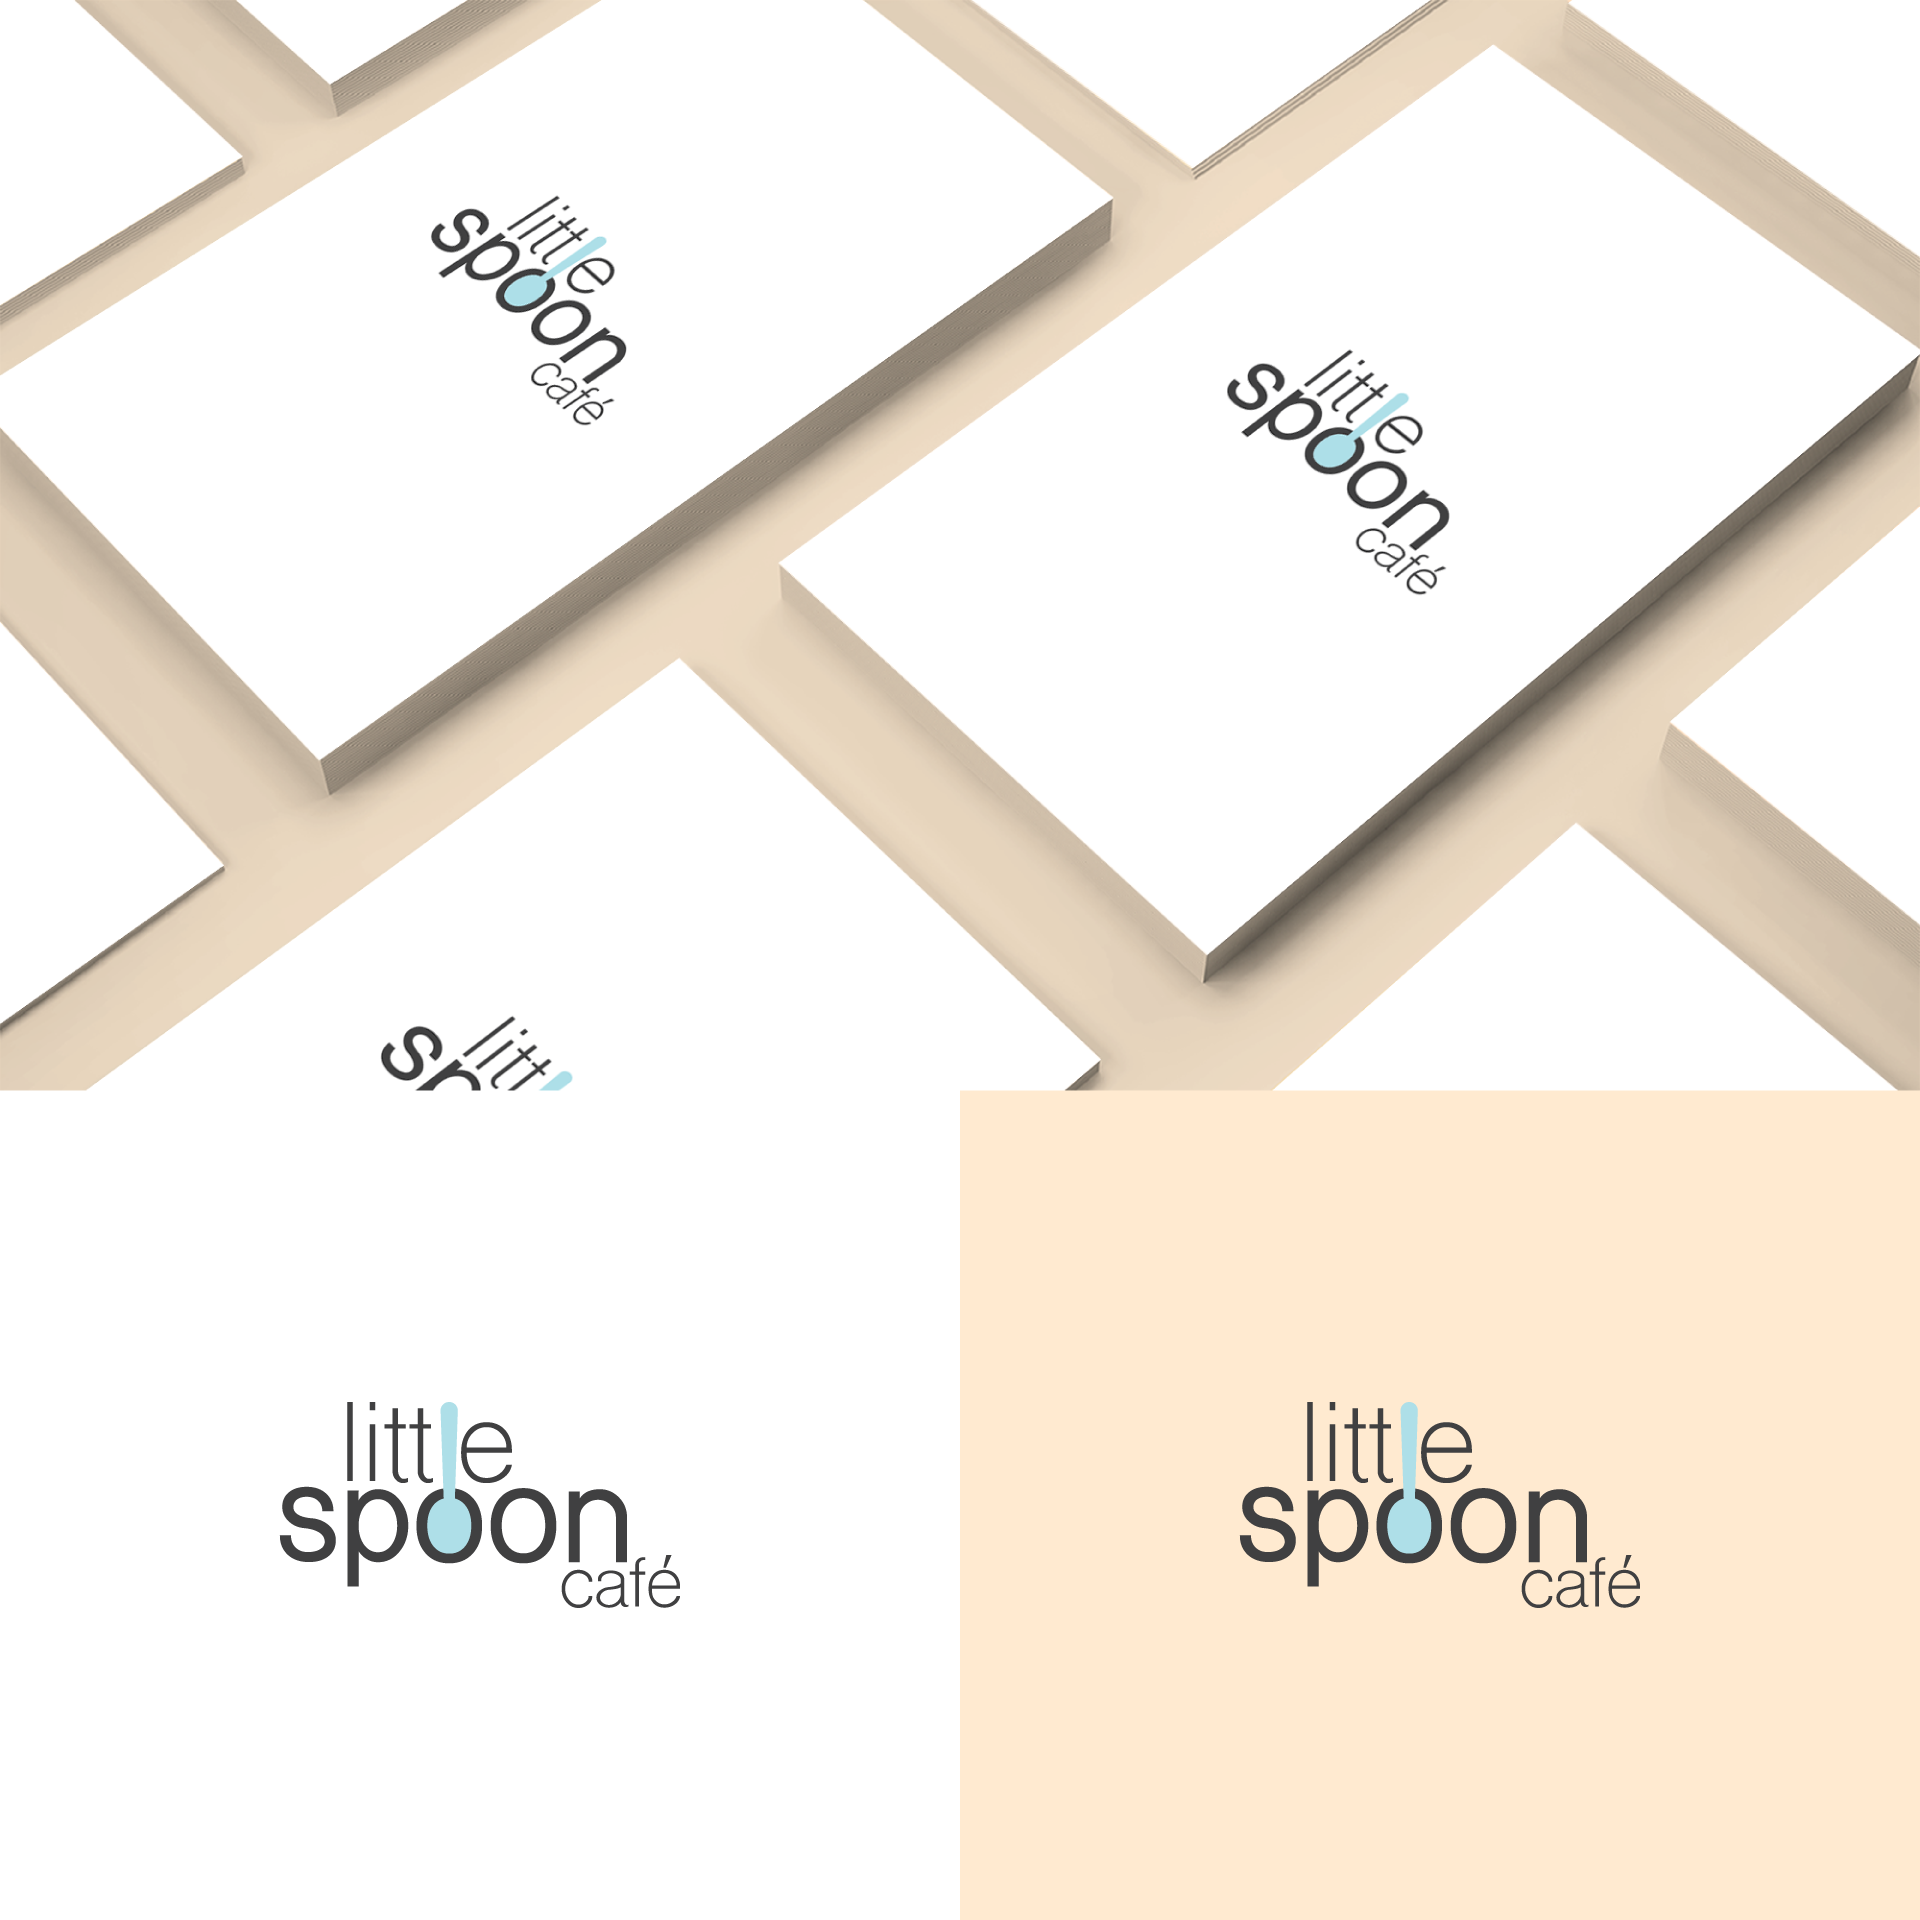 littlespooncafe-square-01.png